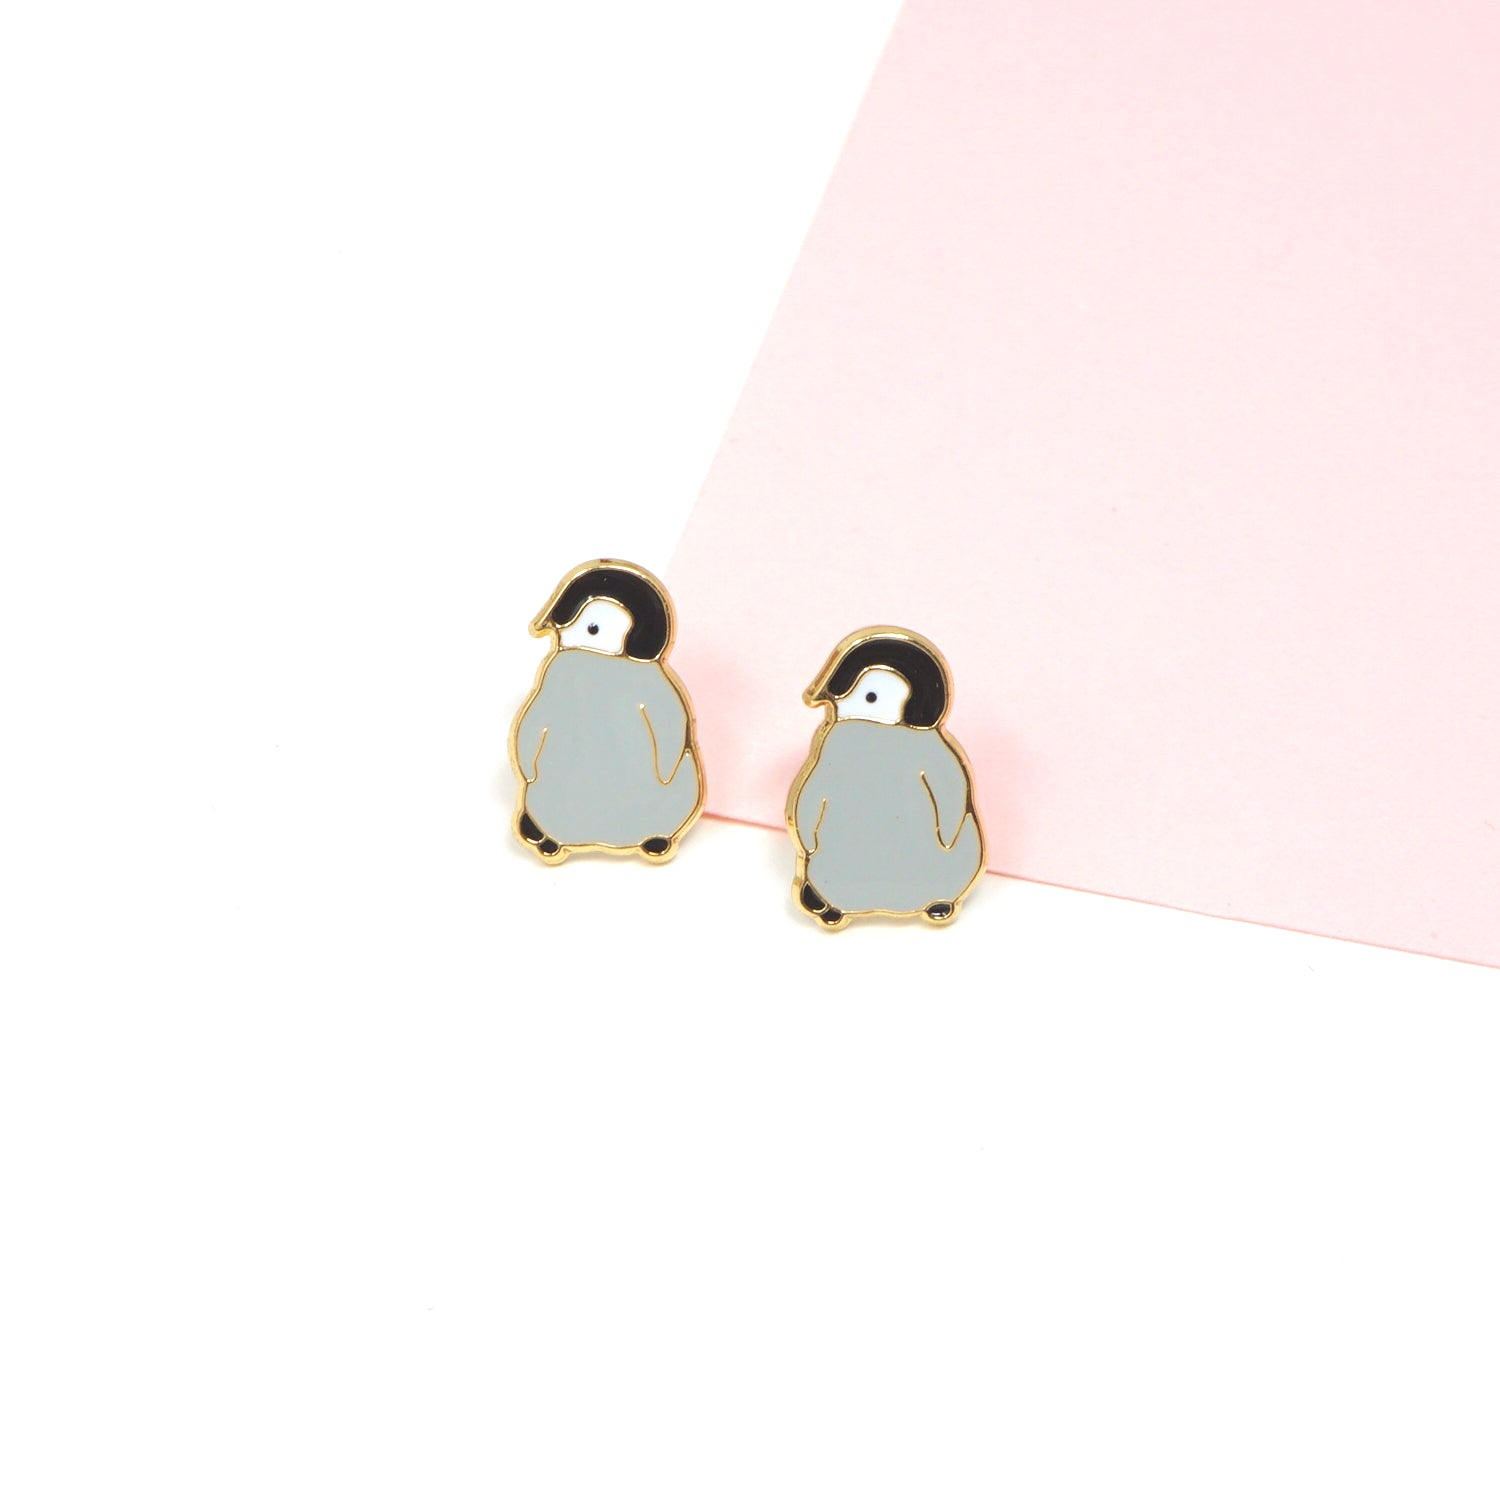 Handcrafted Penguin Enamel Stud Earrings